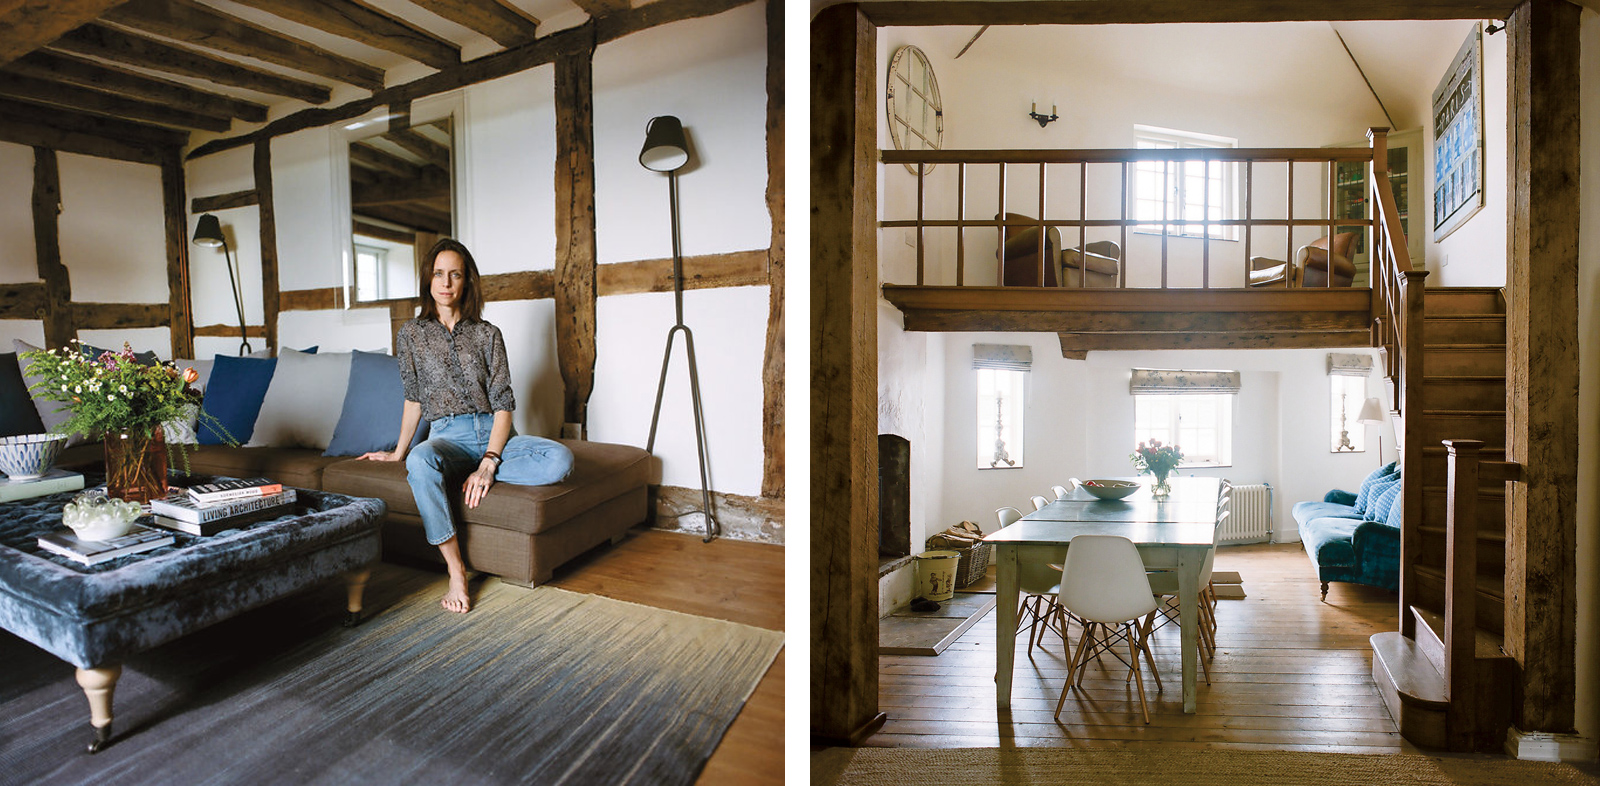 Boathouse images by Carlotta Cardana for The New York Times